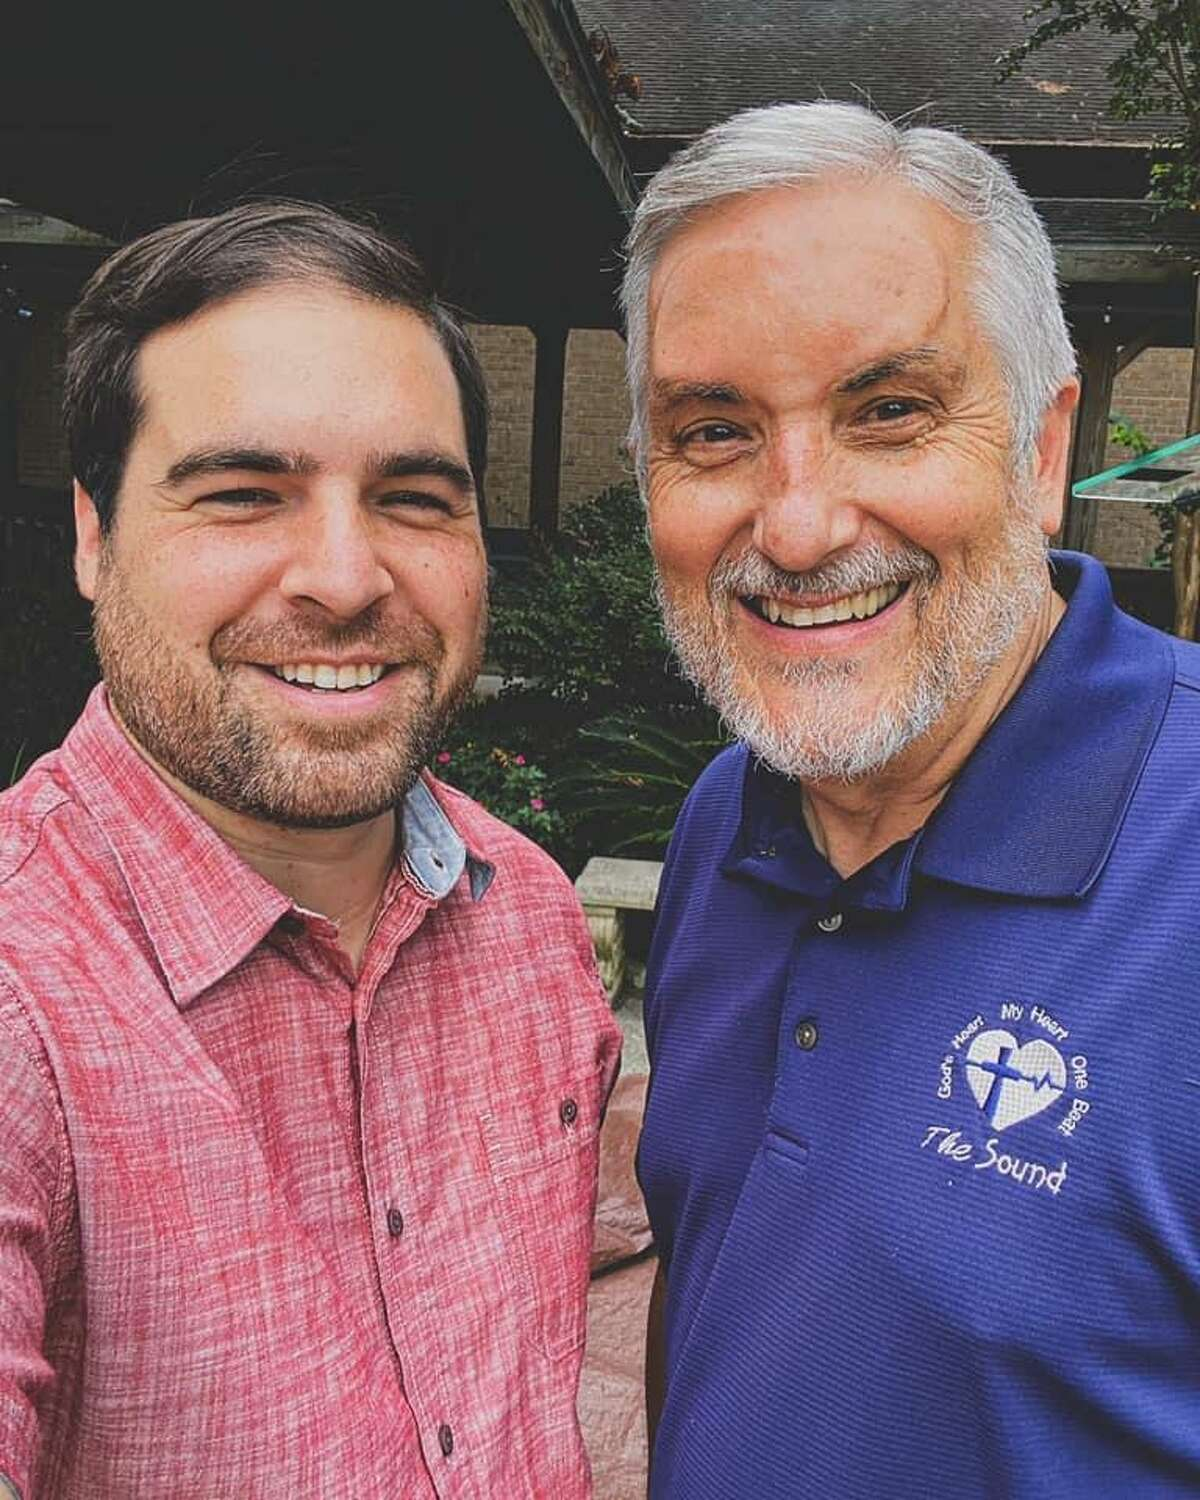 Pictured are Keith Sobus, left, and Dowen Johnson, right. Johnson retired as pastor of April Sound Church on Sept. 1. Johnson was pastor of the church for 34 years. Sobus is the new pastor.